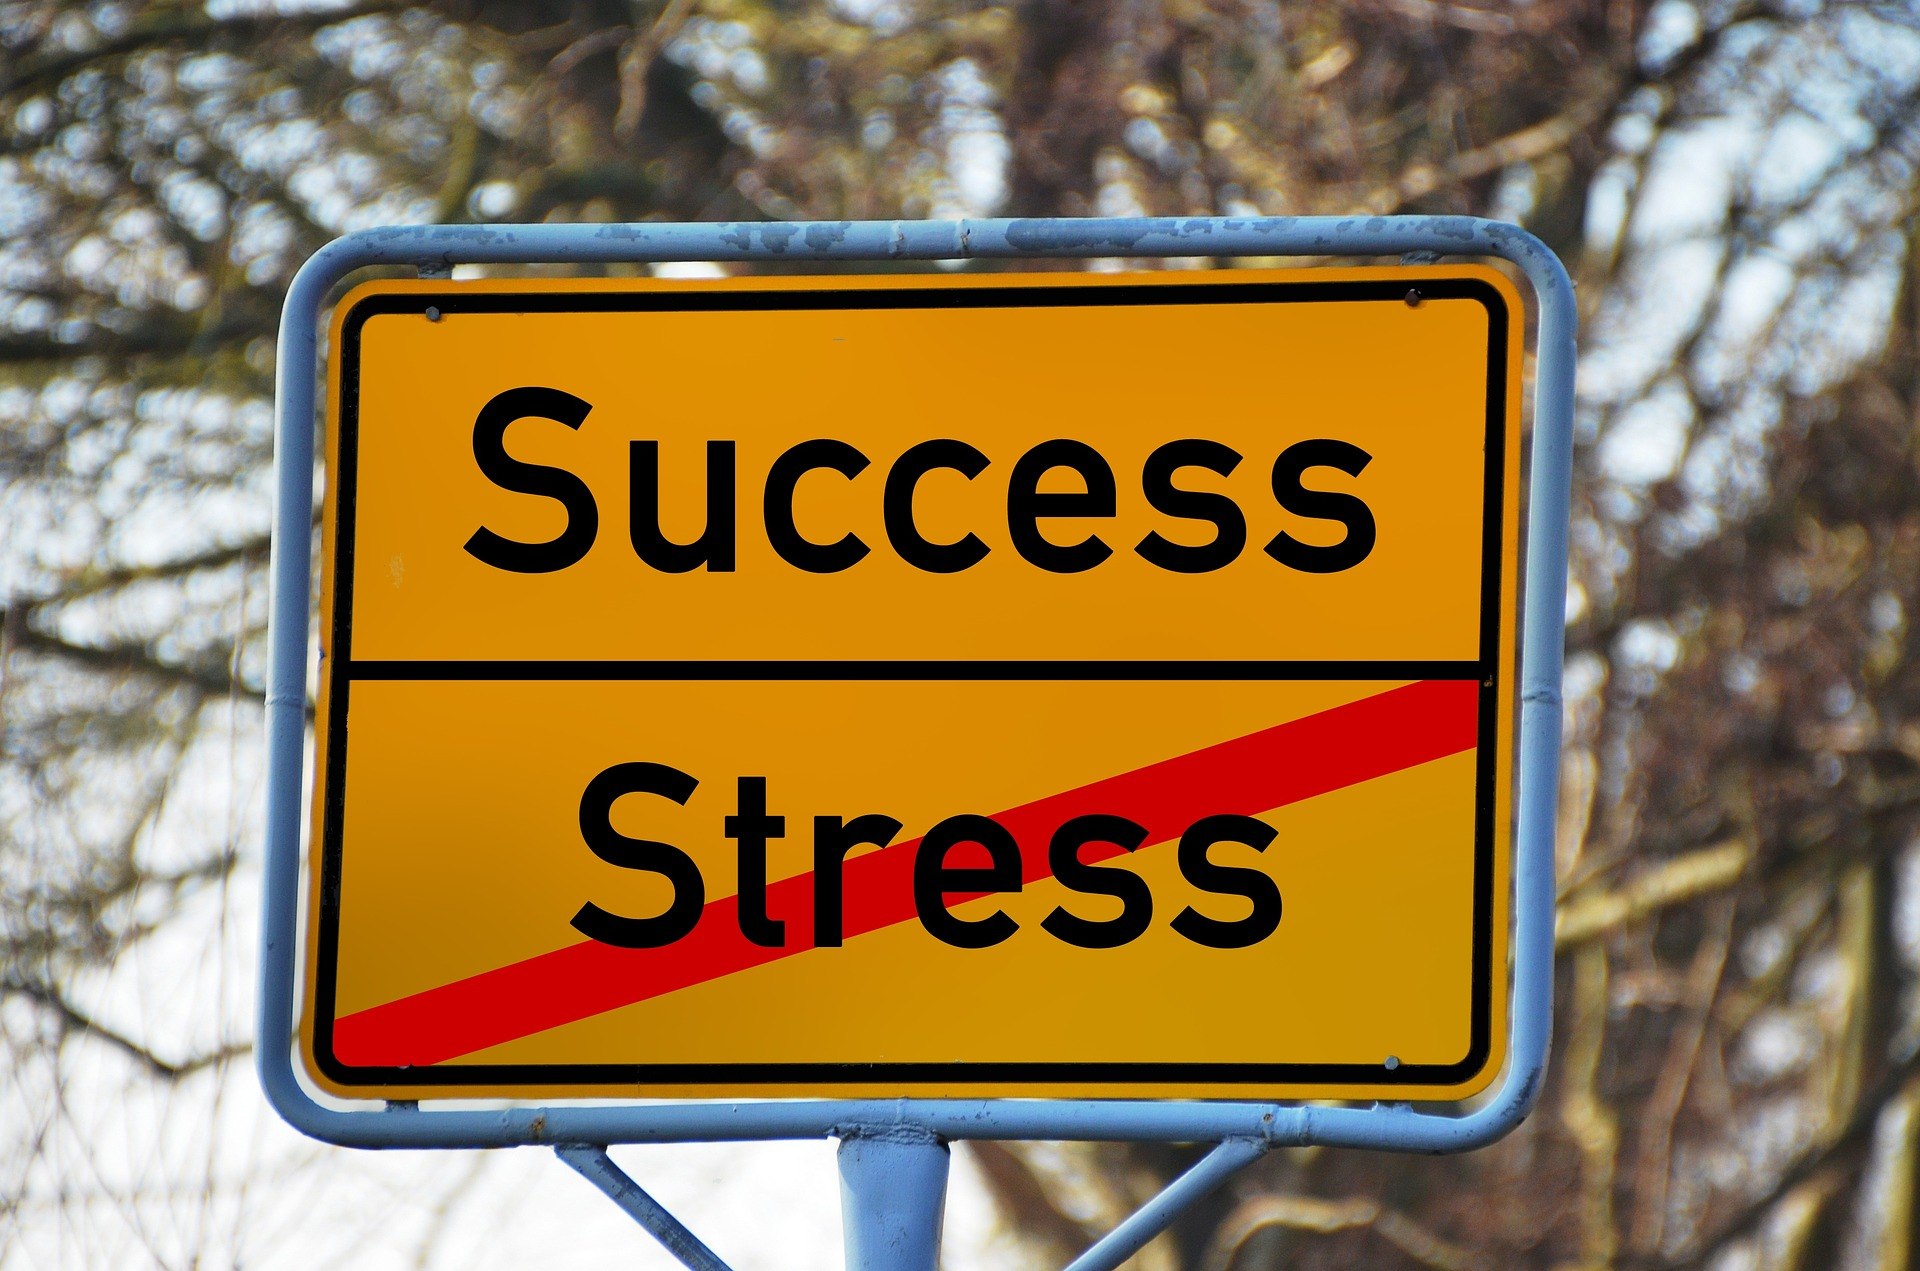 How to Build a Business Stress Free?